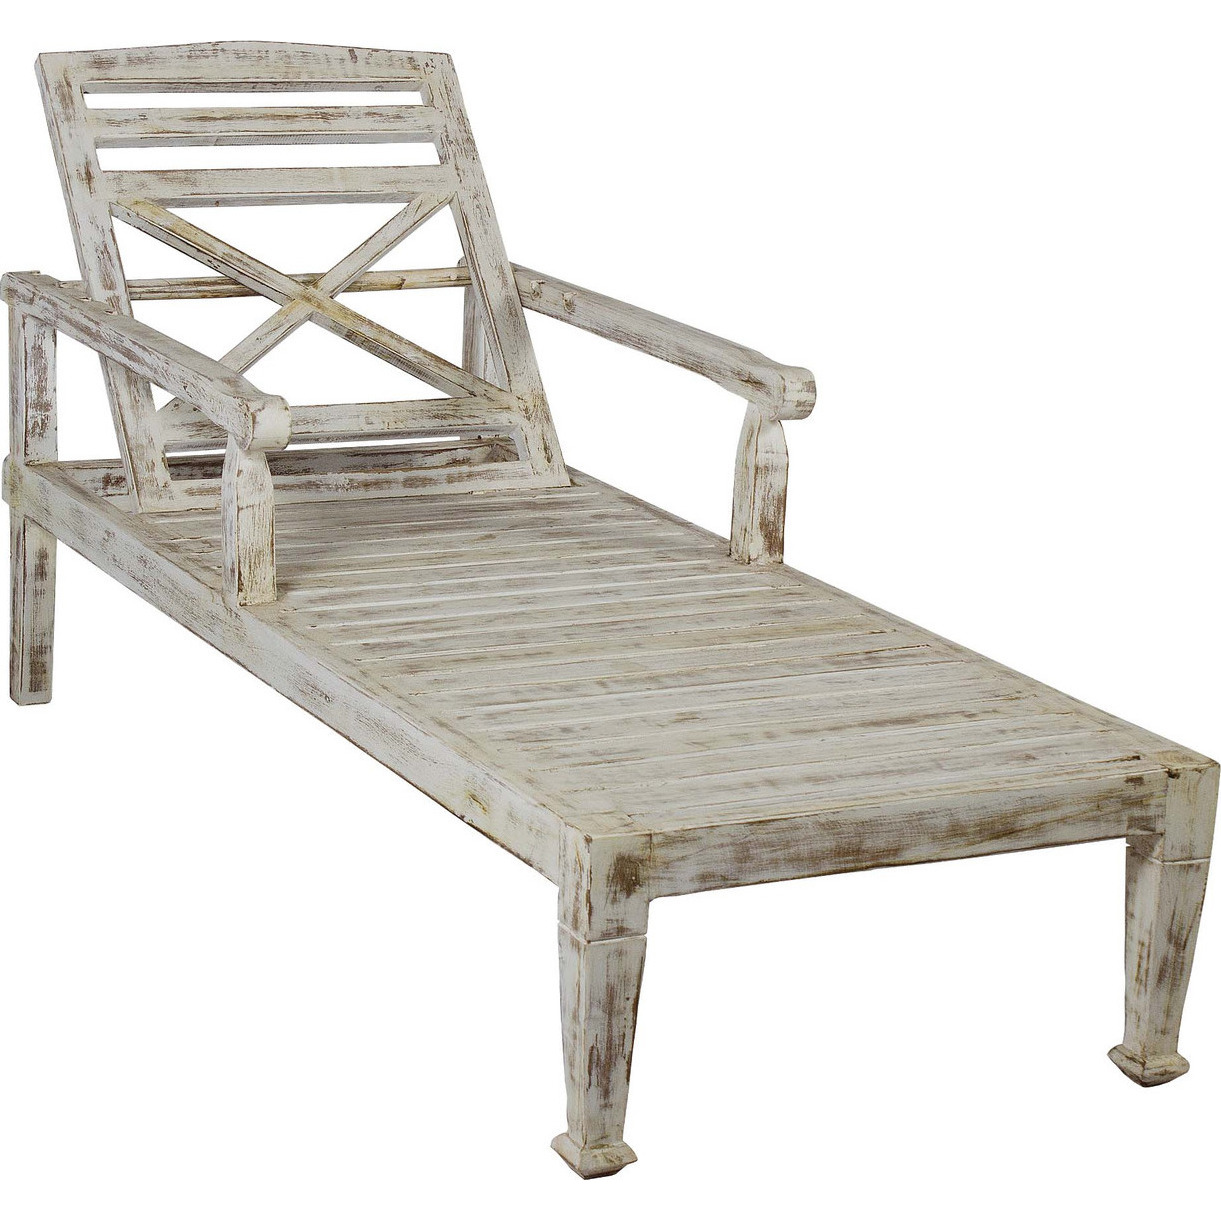 SOLID TEAK WOOD BEACH CHAISE LOUNGE CHAIRB - Antique Finish  sc 1 st  ZiFiti : beach chaise lounge - Sectionals, Sofas & Couches